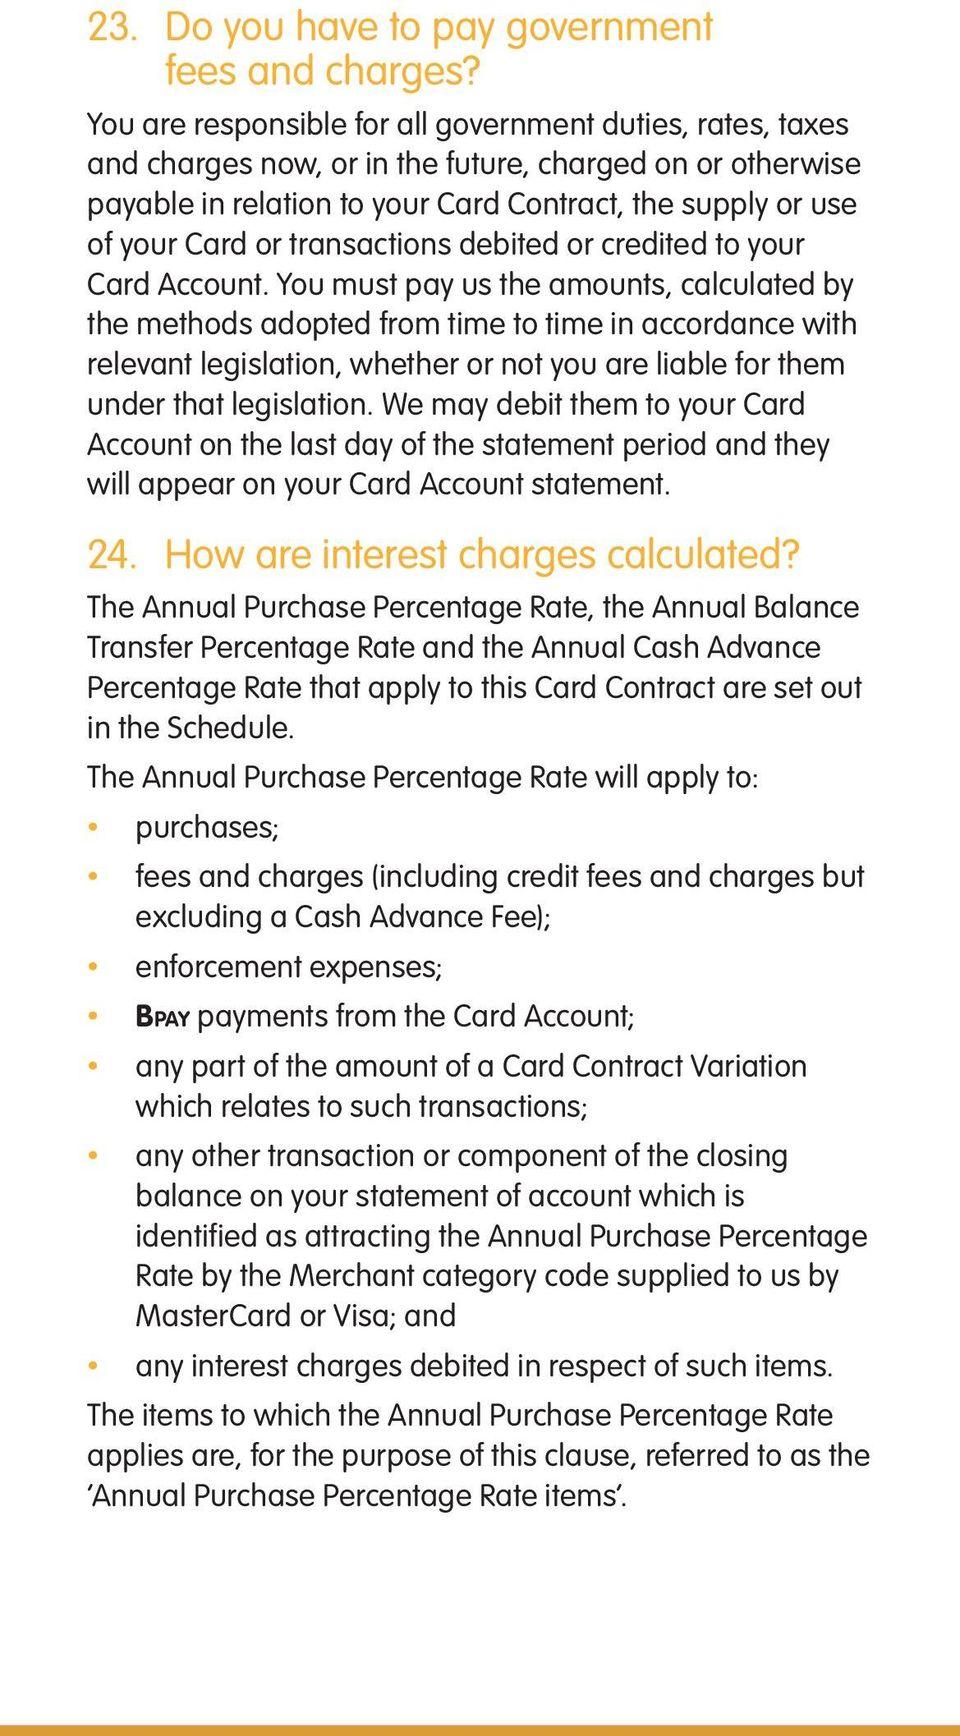 transactions debited or credited to your Card Account.